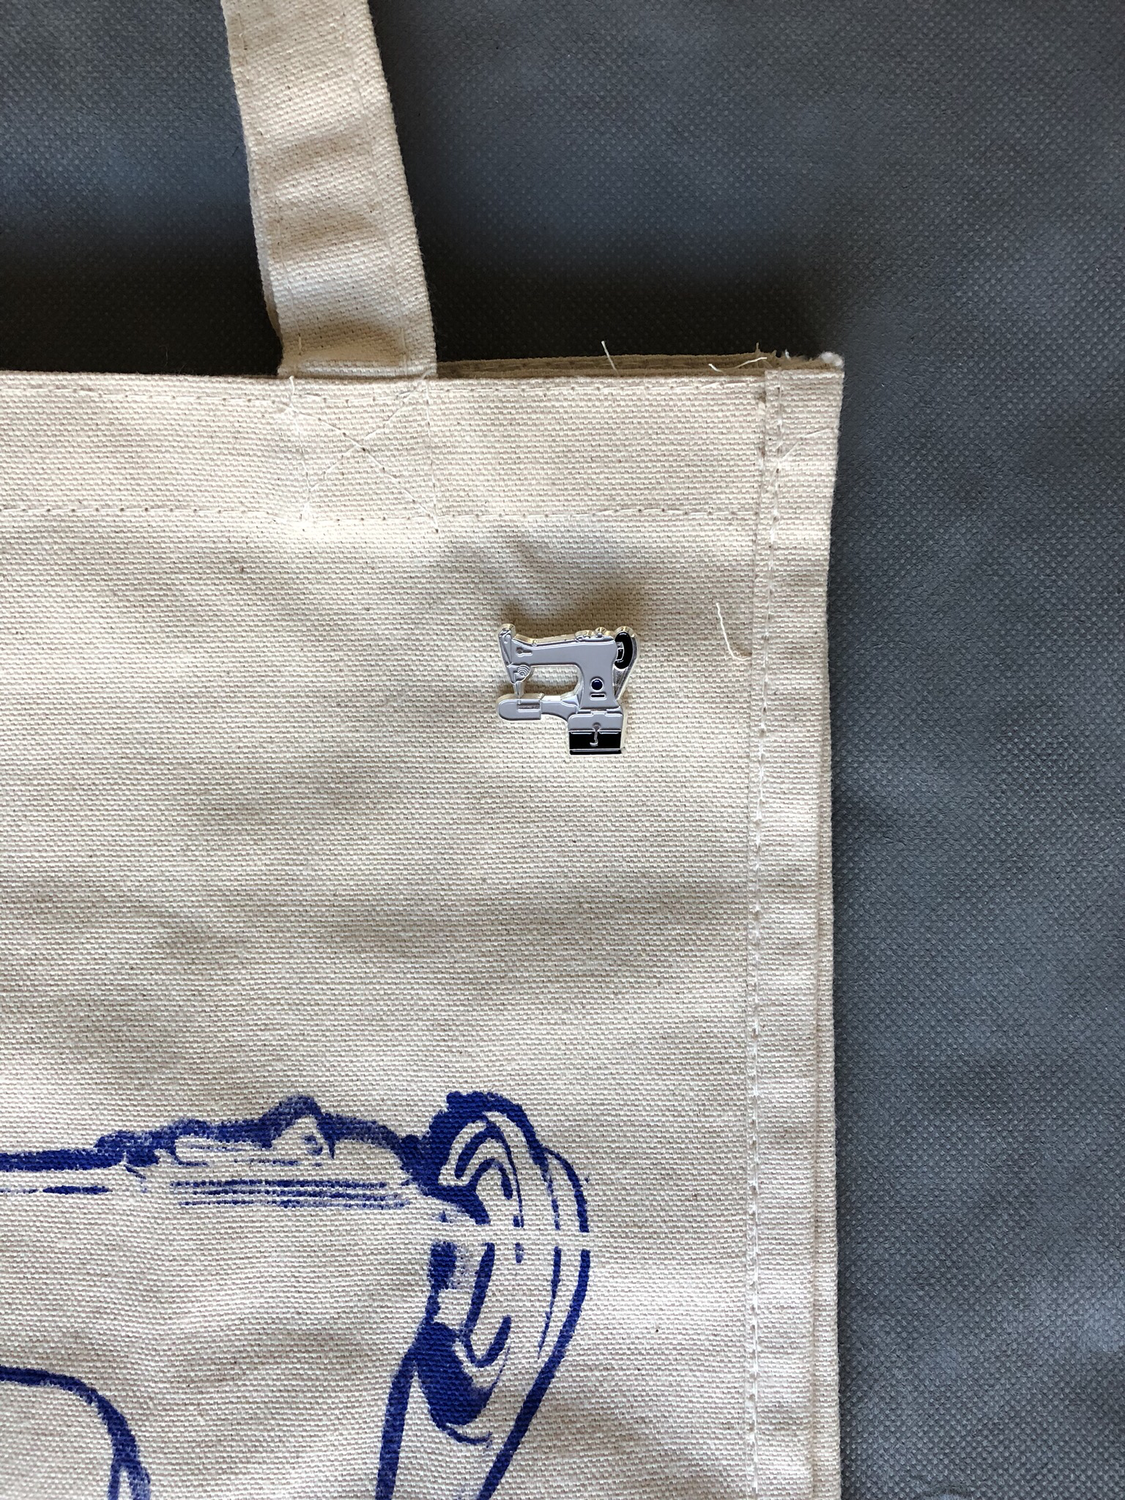 Package deal: Pin + Tote + Discount code 10%